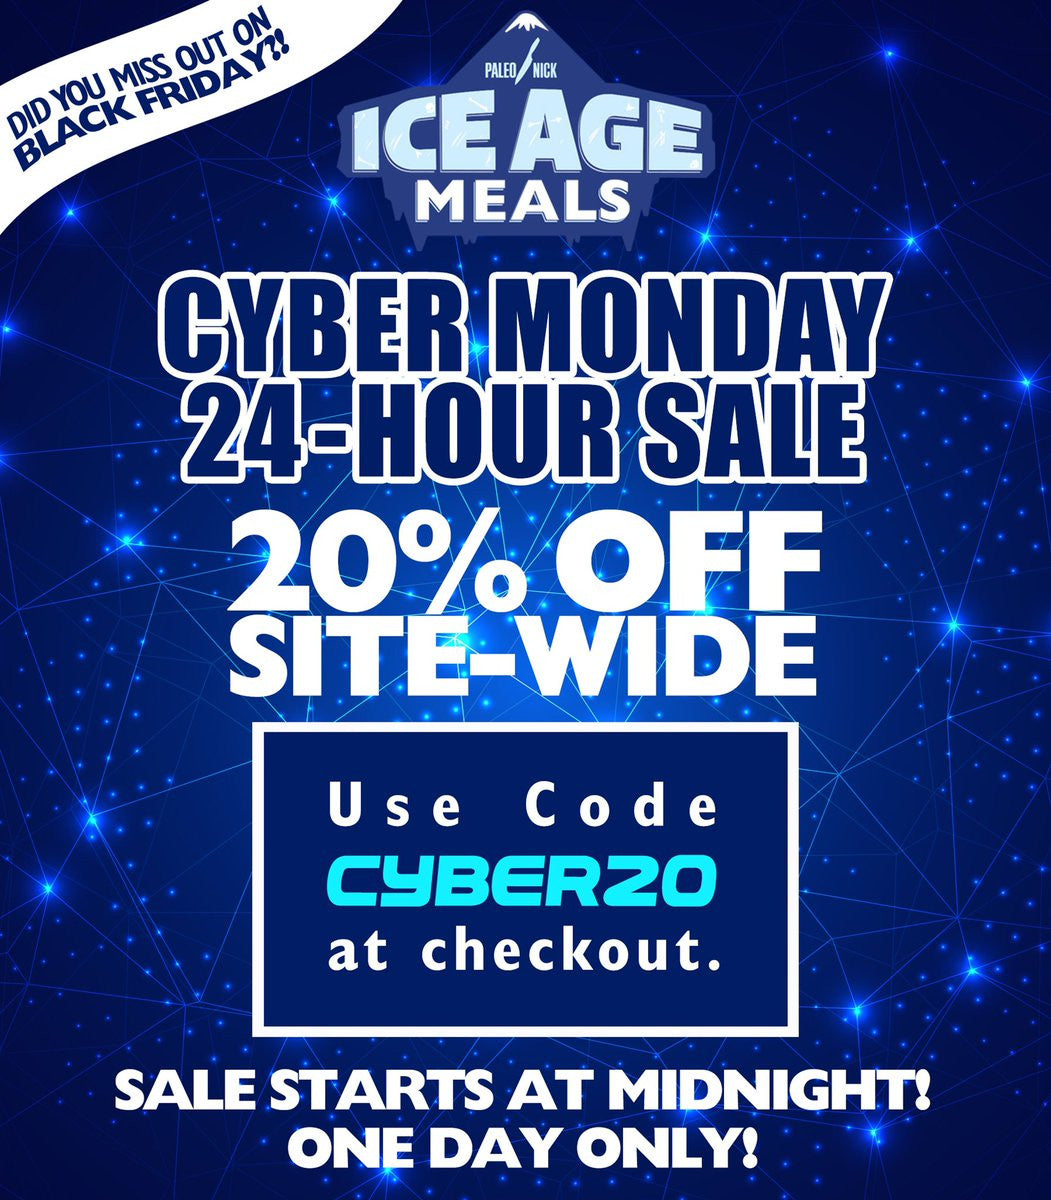 Ice Age Meals Does Cyber Monday